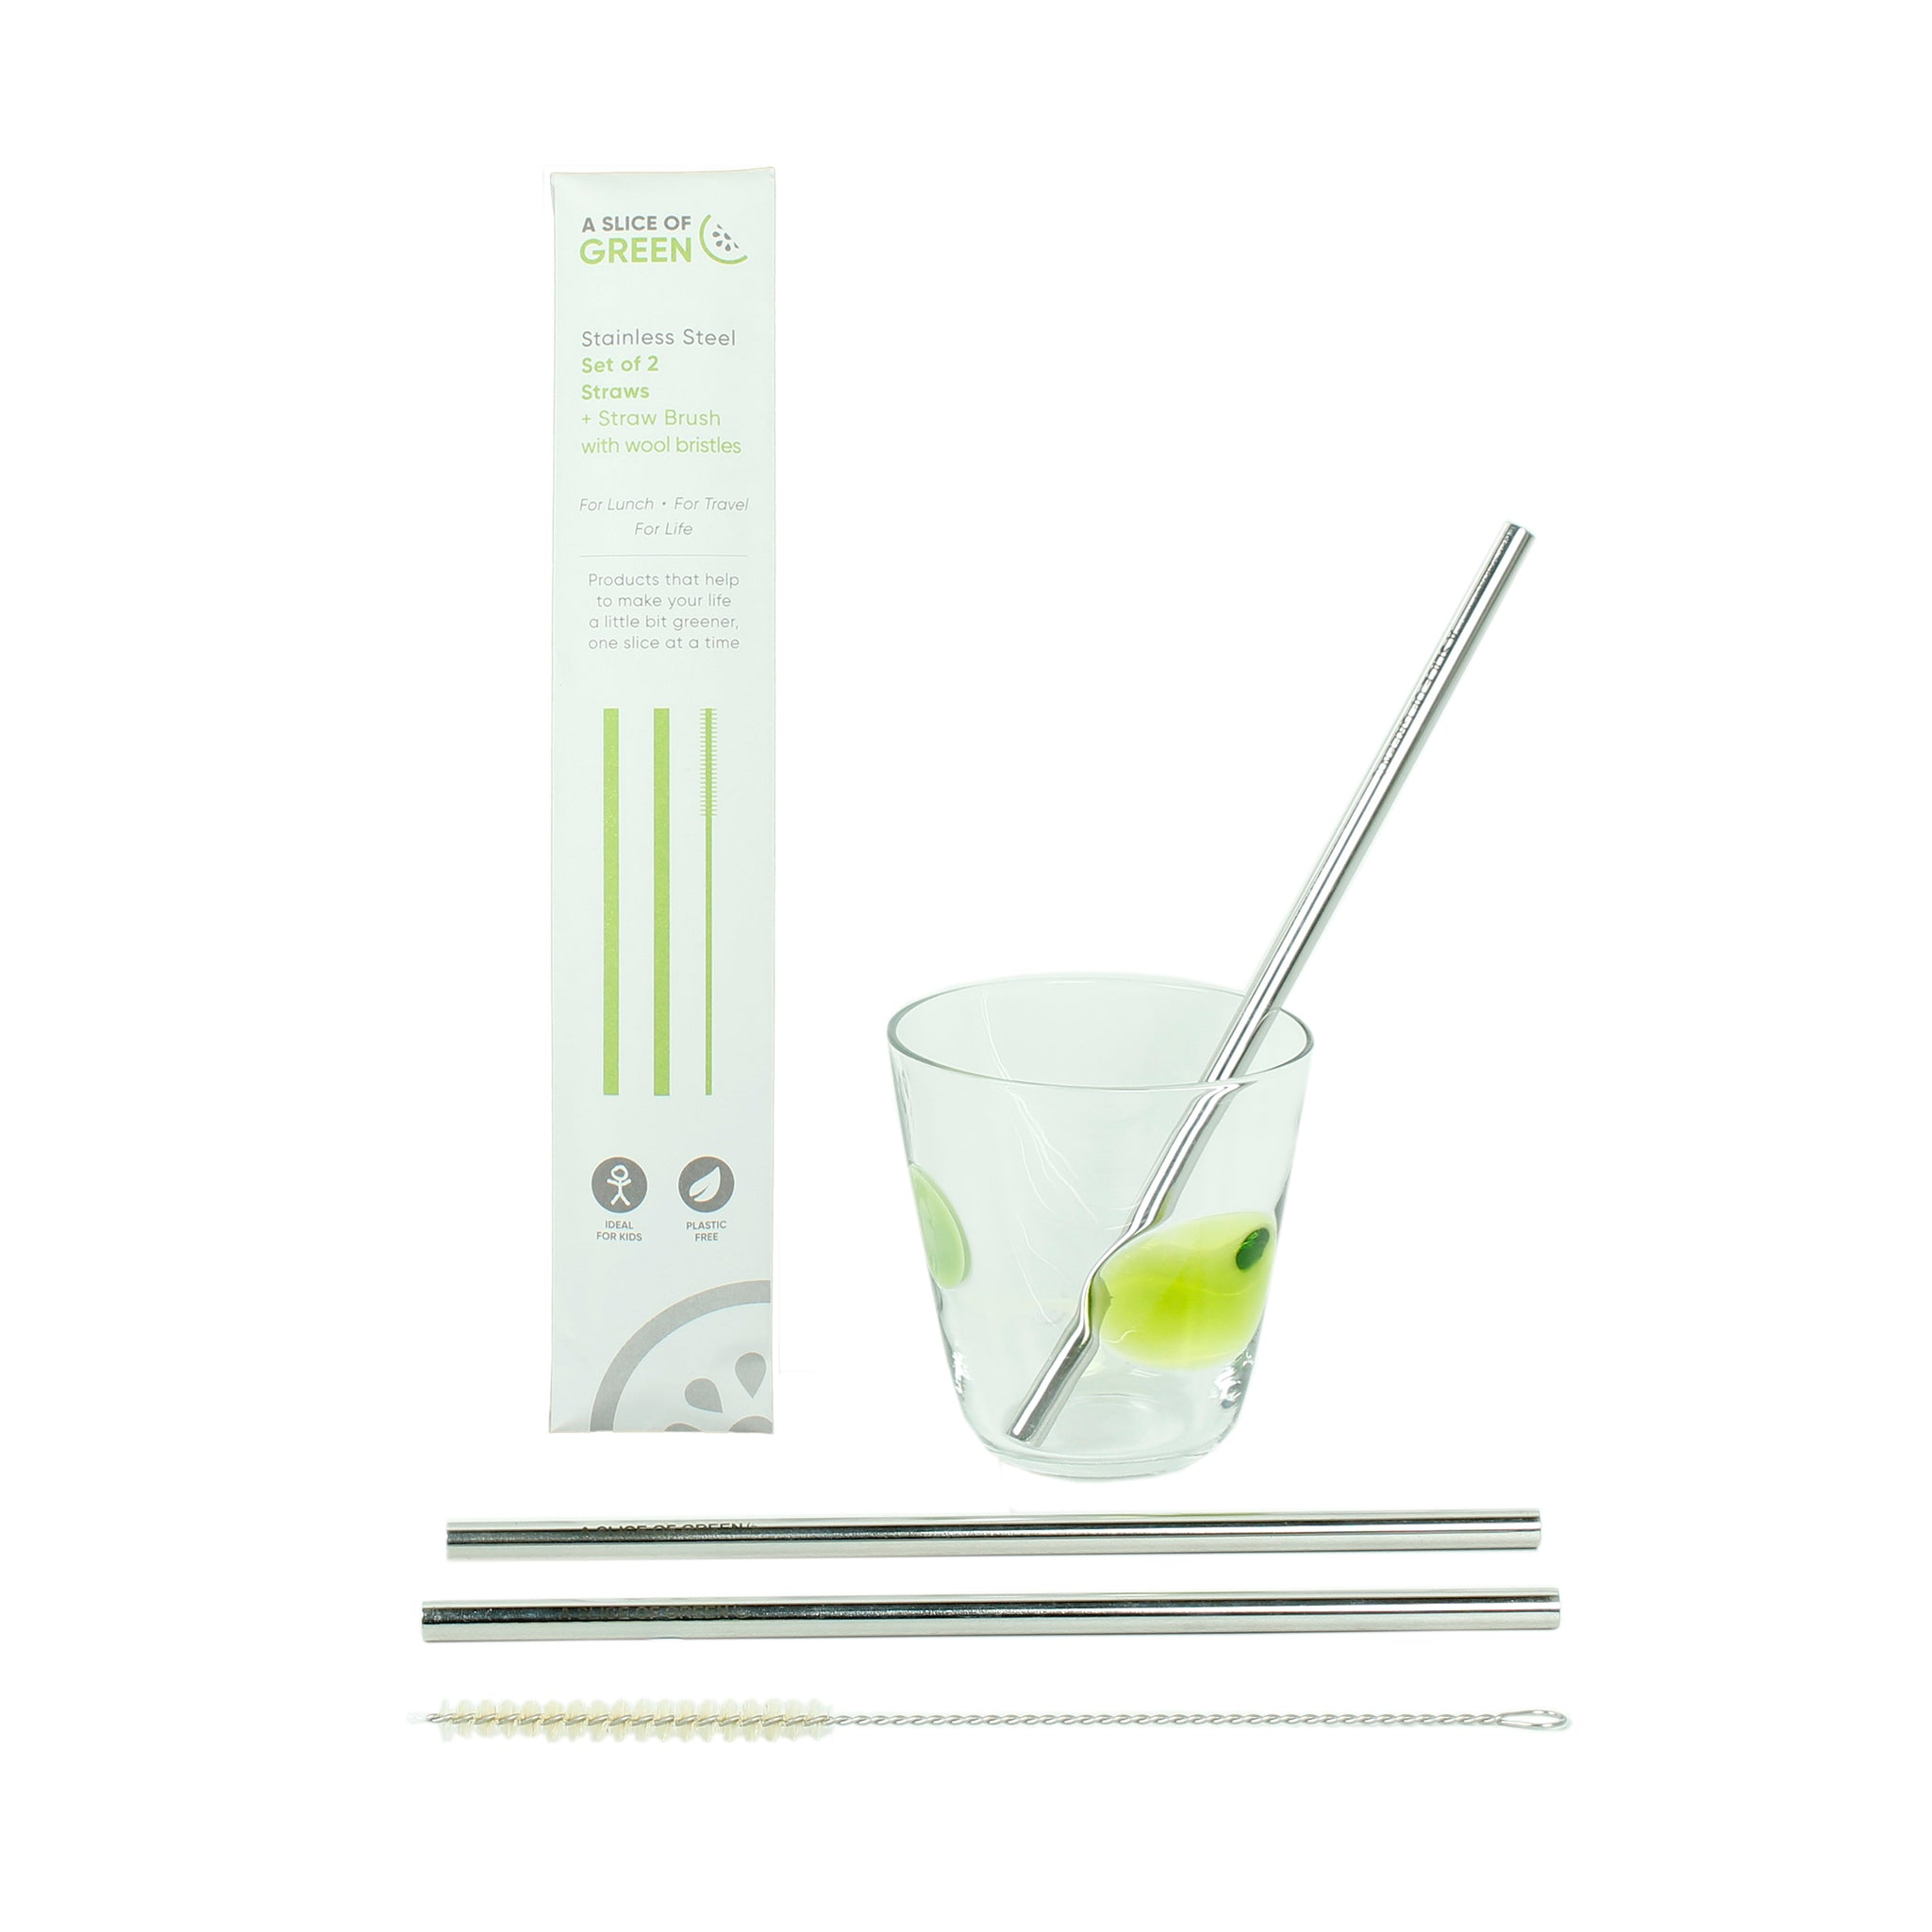 Stainless steel straws and cleaning brush